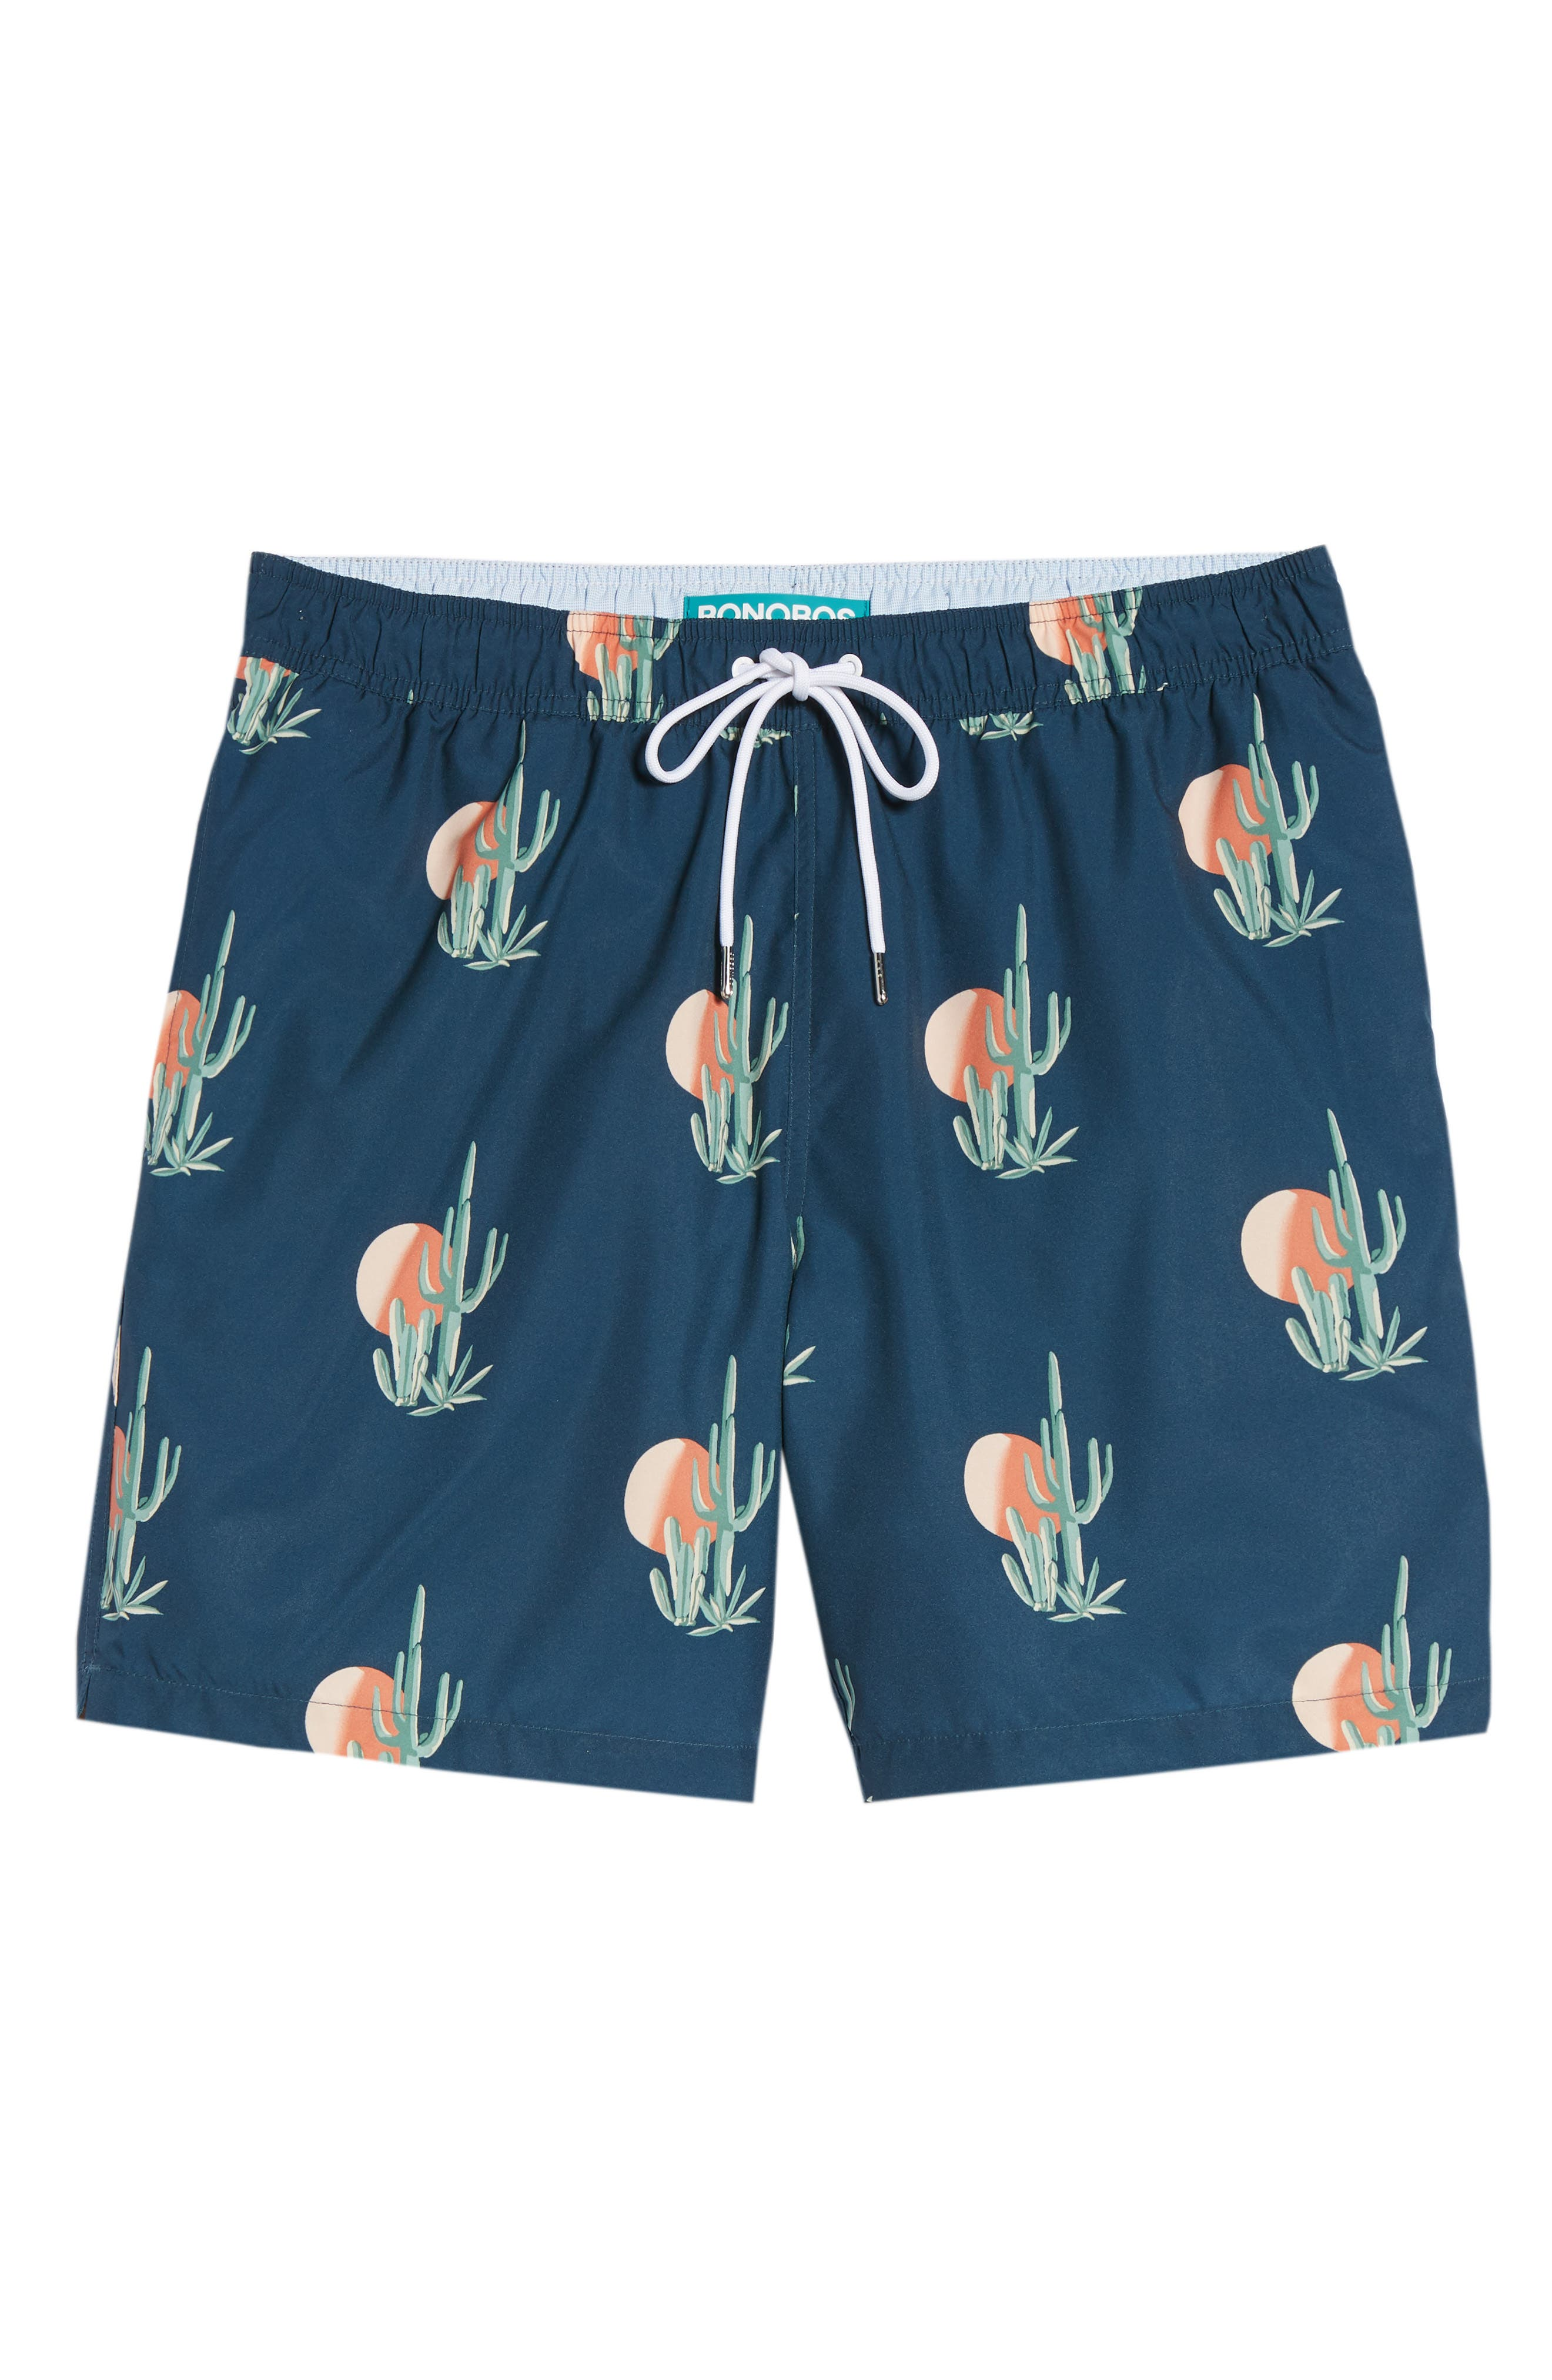 Banzai 7-Inch Swim Trunks,                             Alternate thumbnail 6, color,                             Sunset Cacti